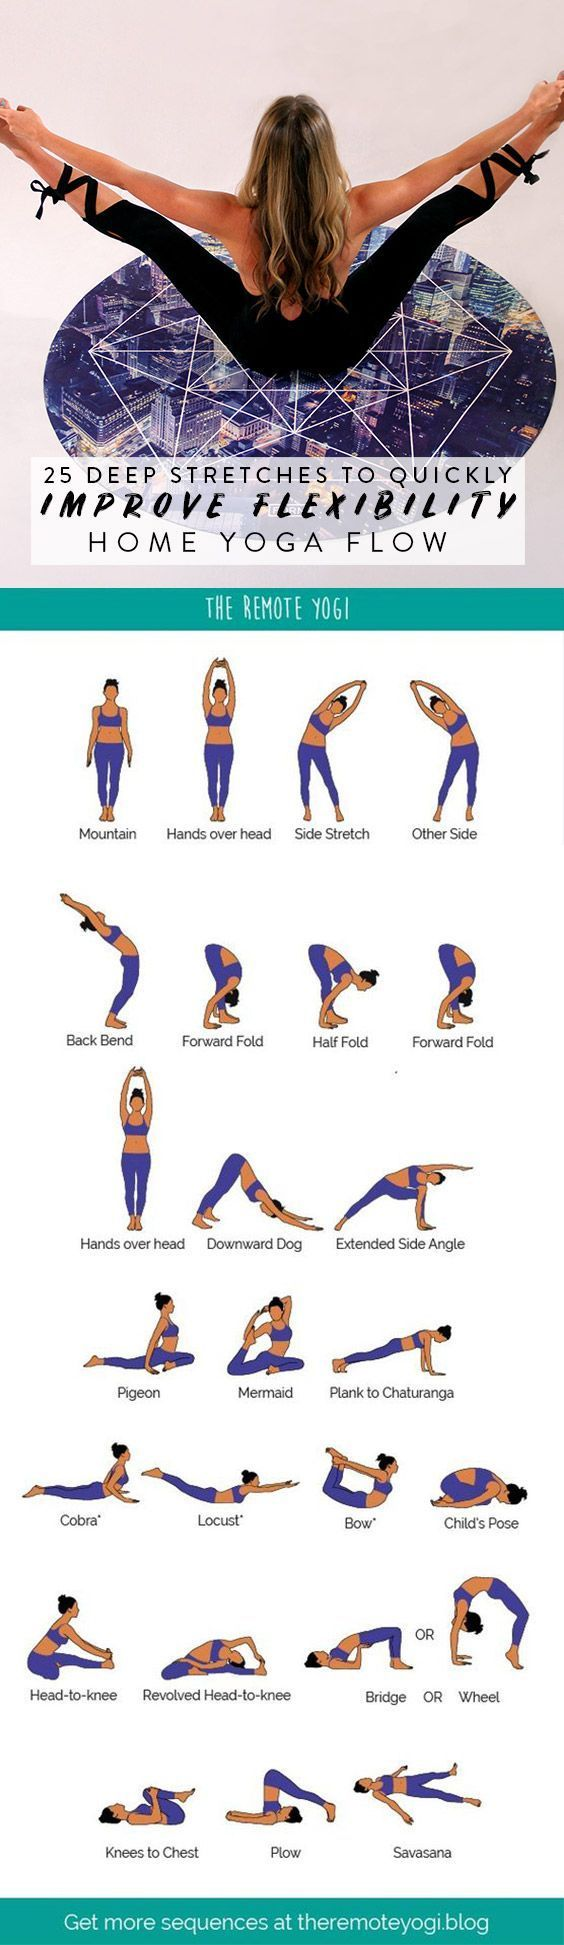 Yoga Flow for a Flexible Spine – FREE PDF